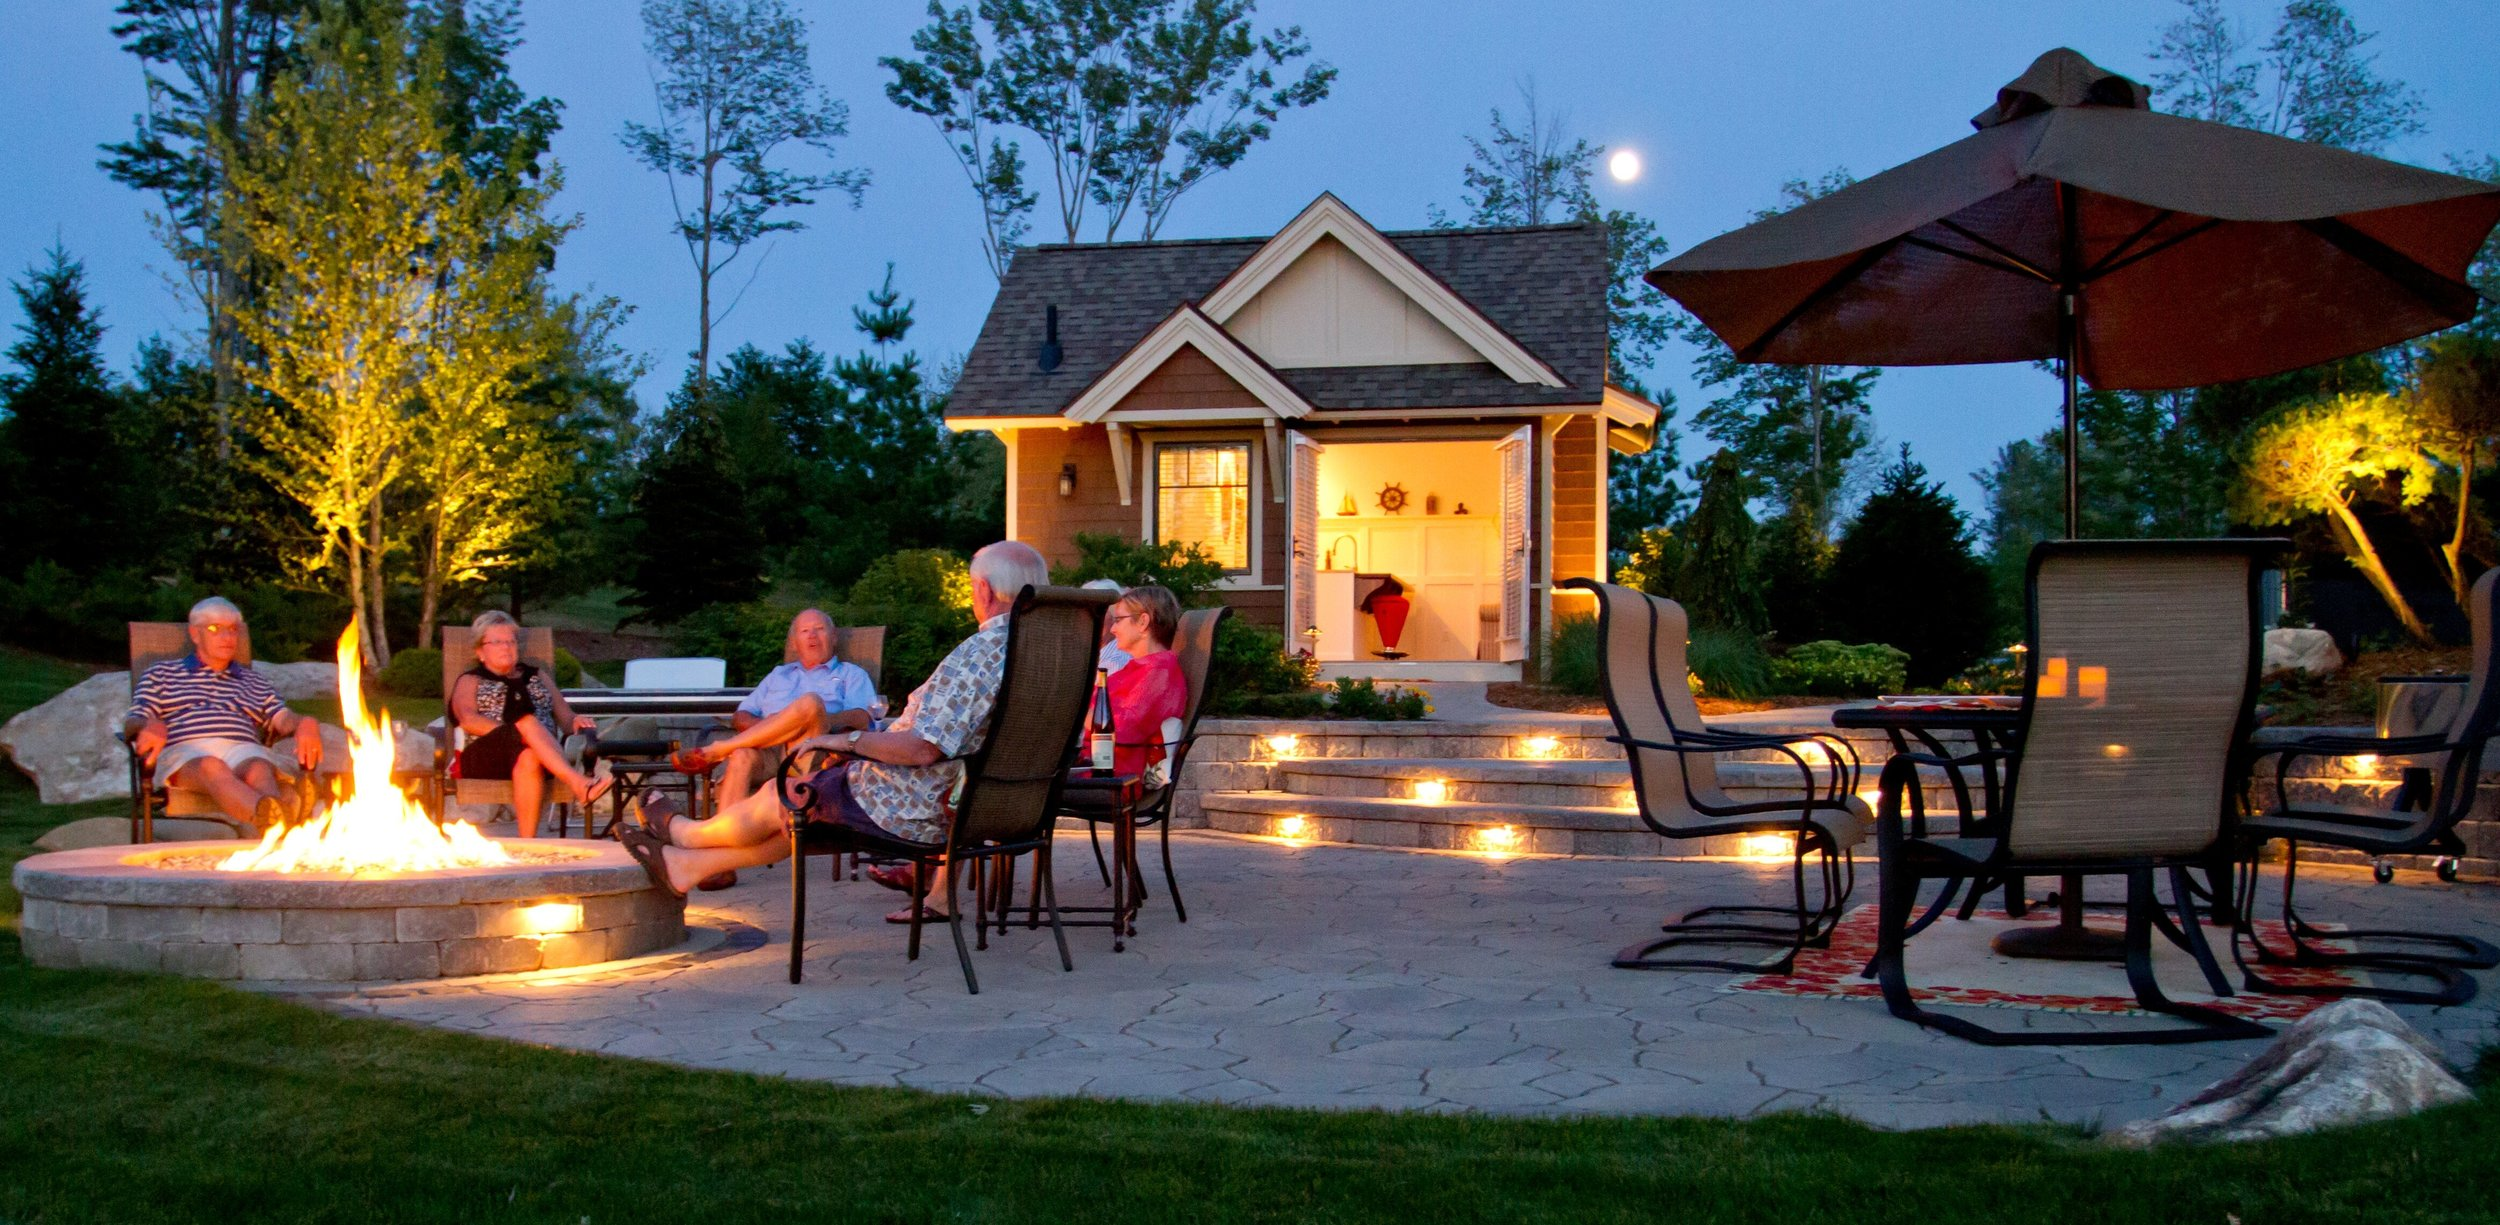 What You Need to Know About Installing an Outdoor Fireplace in West Bloomfield Township, MI